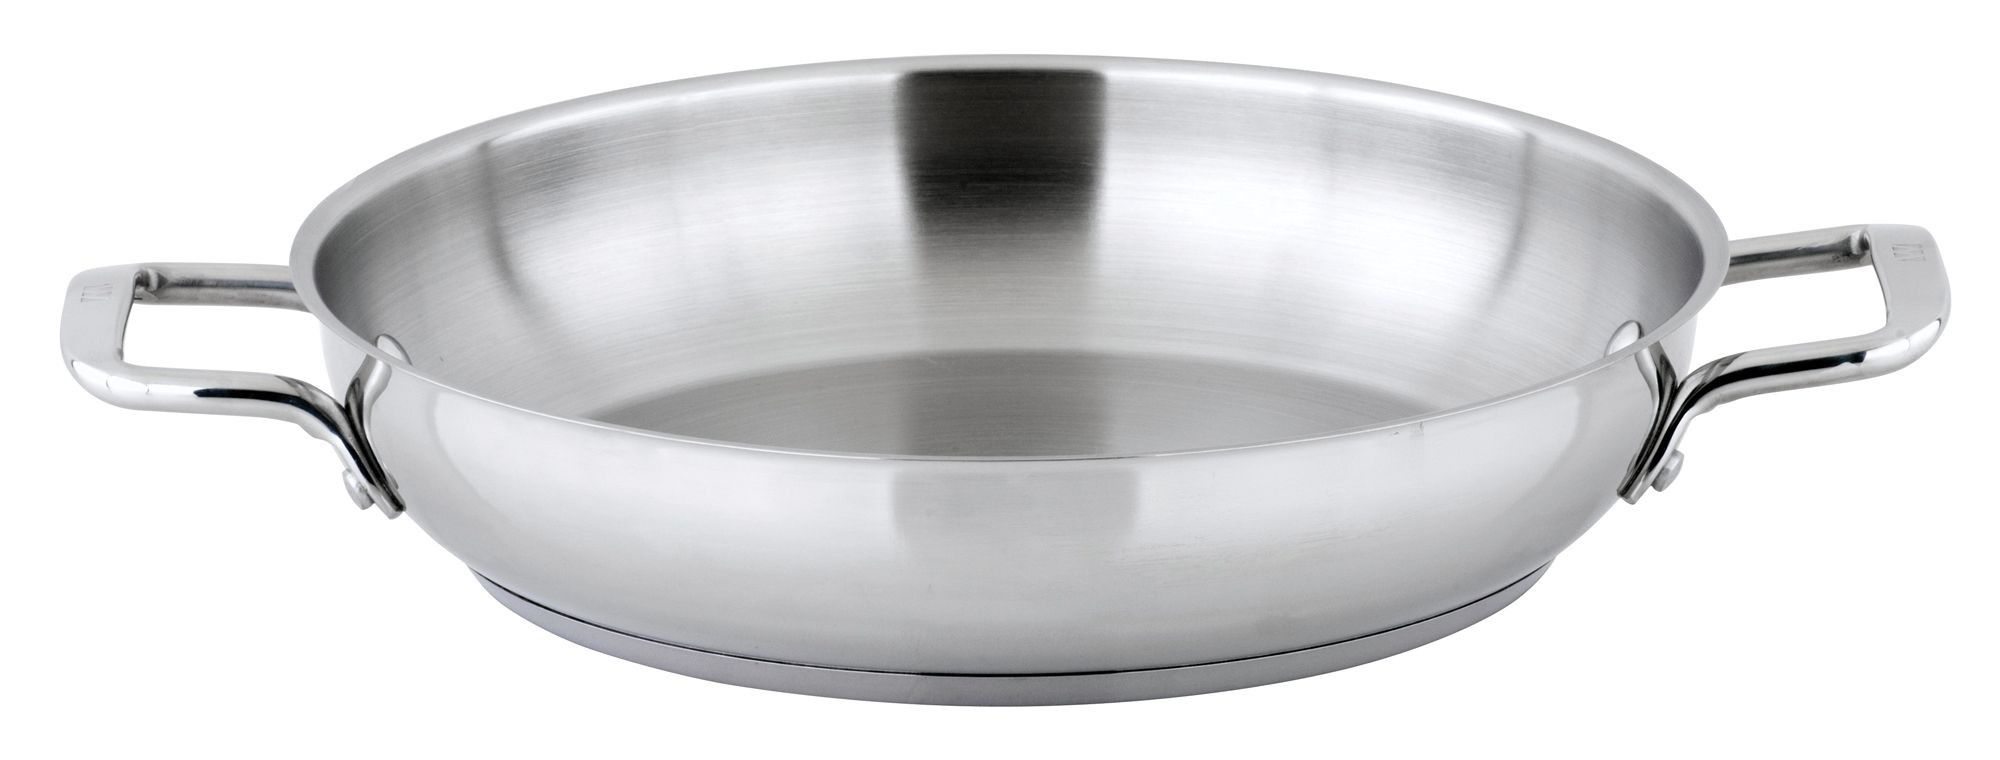 "Winco SSOP-12 Stainless Steel 12-1/2"" Omelet Pan"